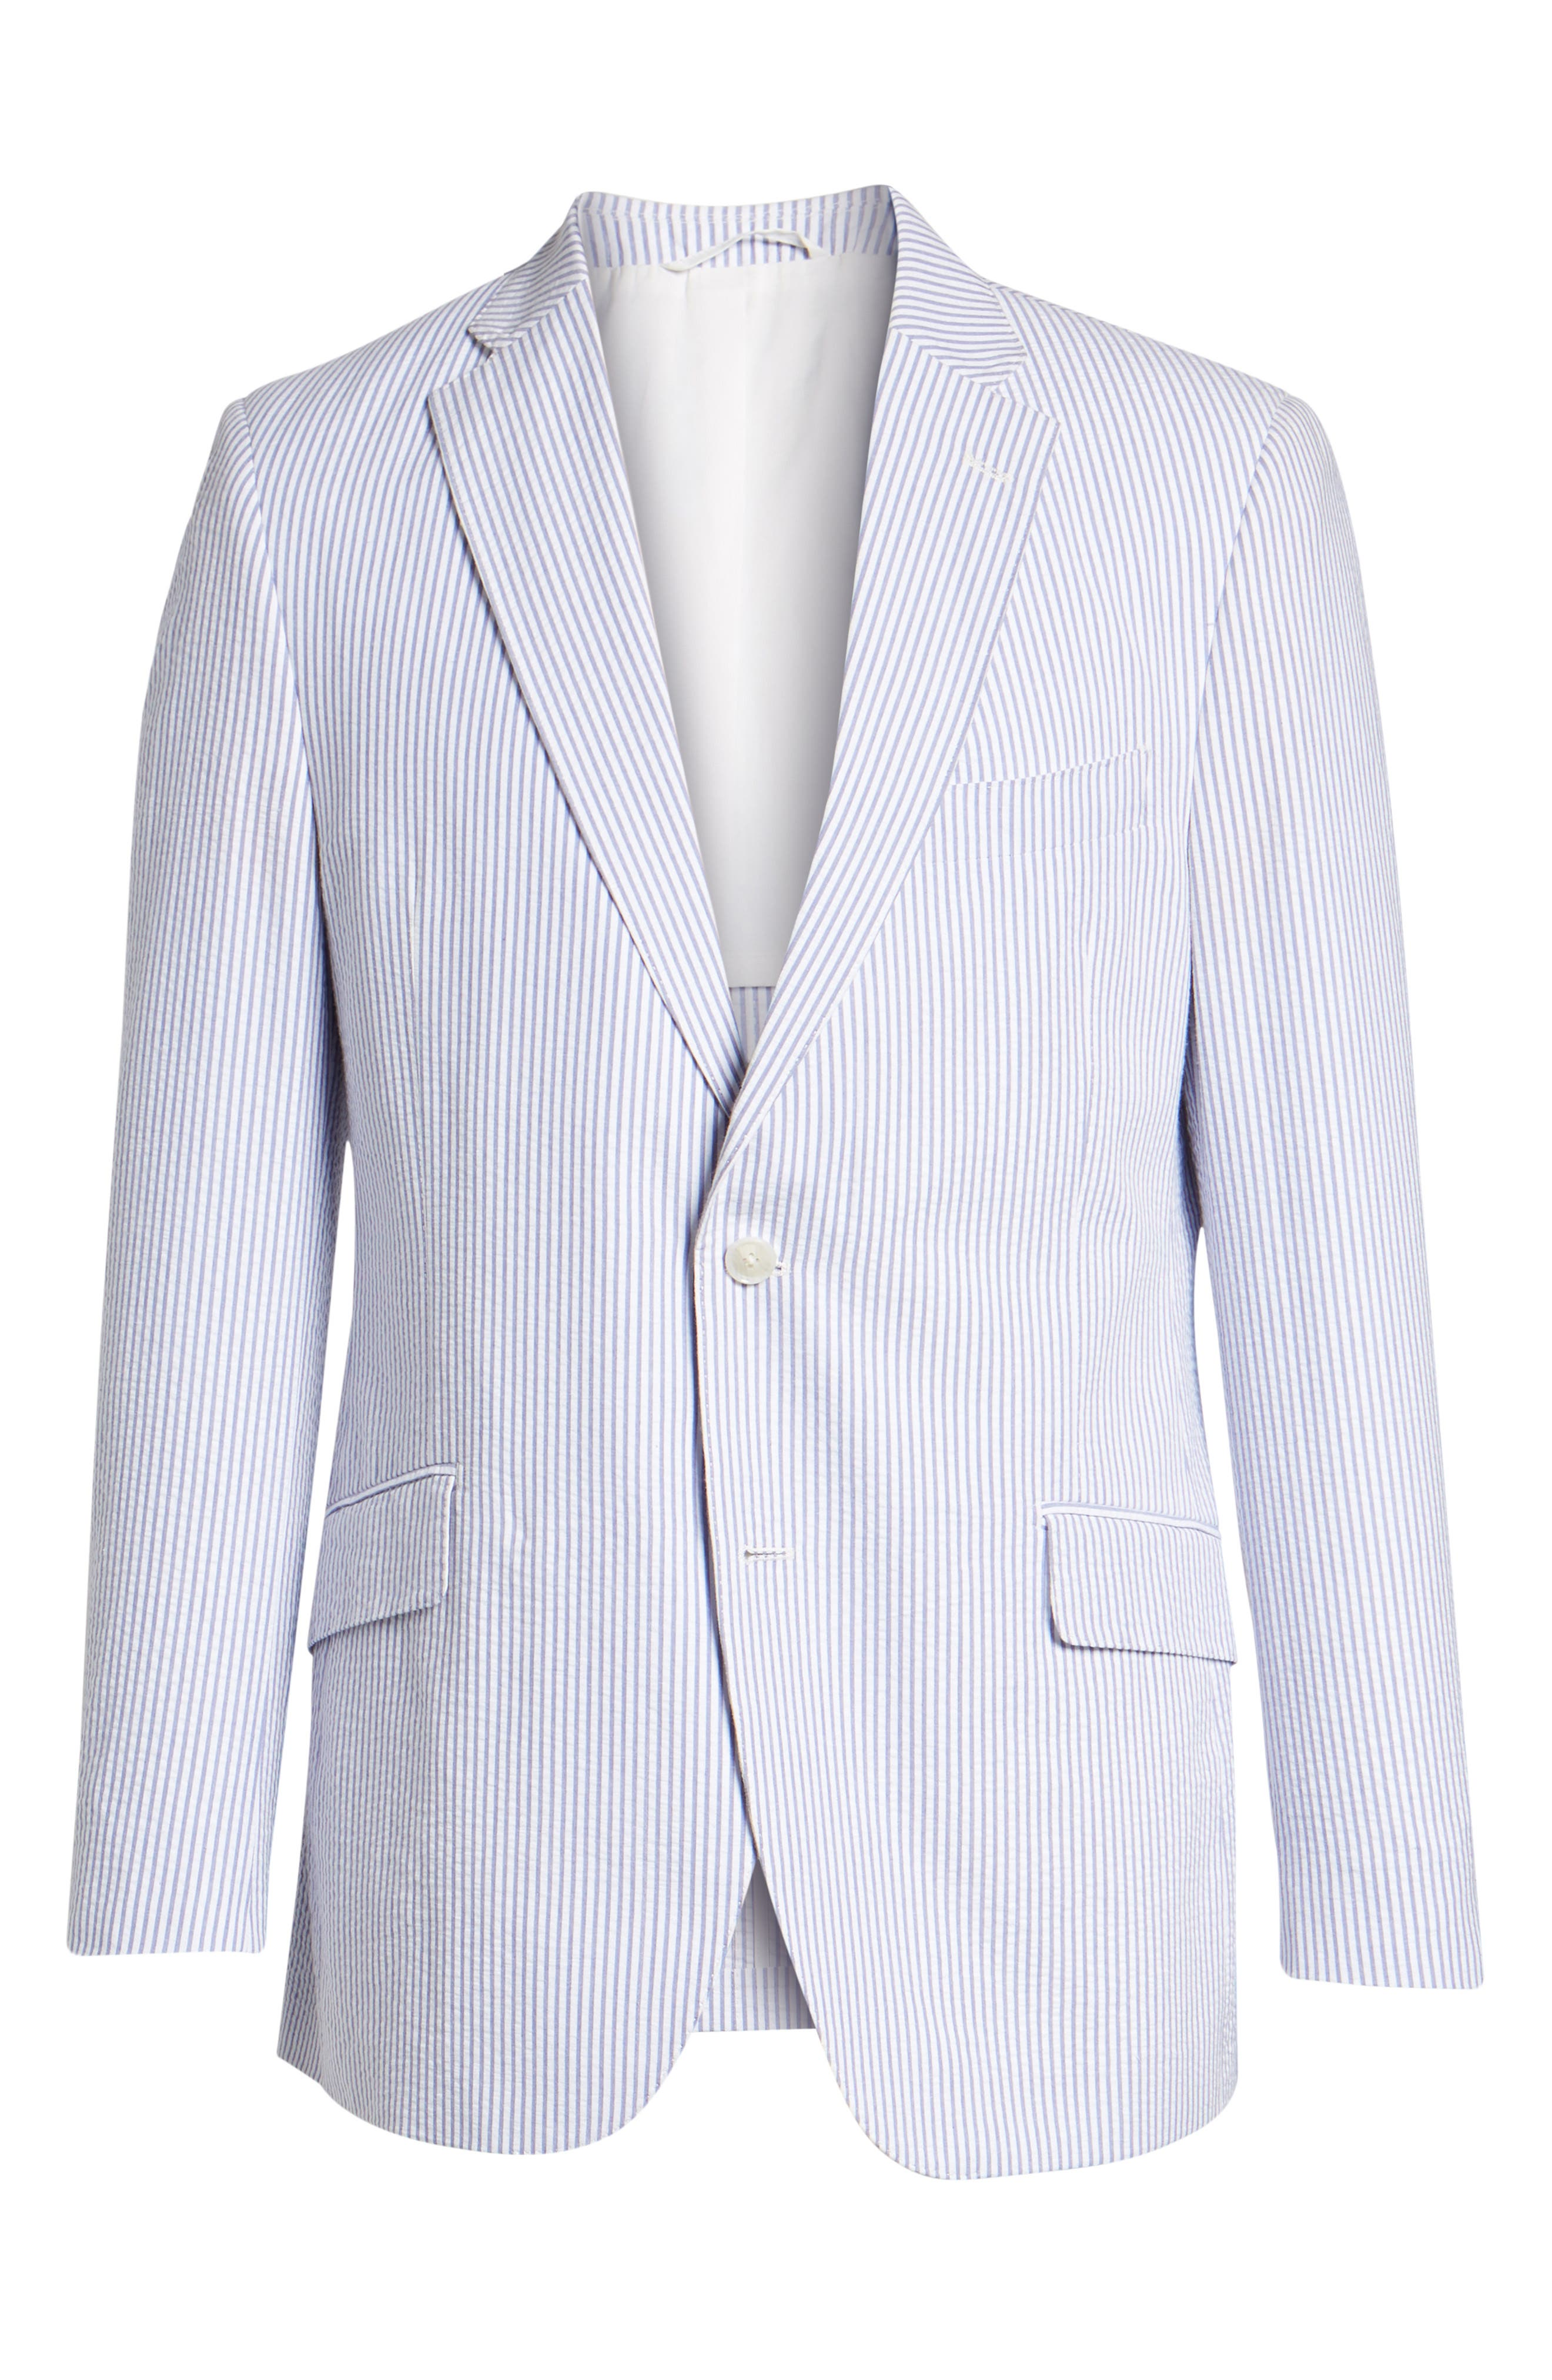 Jack AIM Classic Fit Seersucker Sport Coat,                             Alternate thumbnail 5, color,                             BLUE AND WHITE